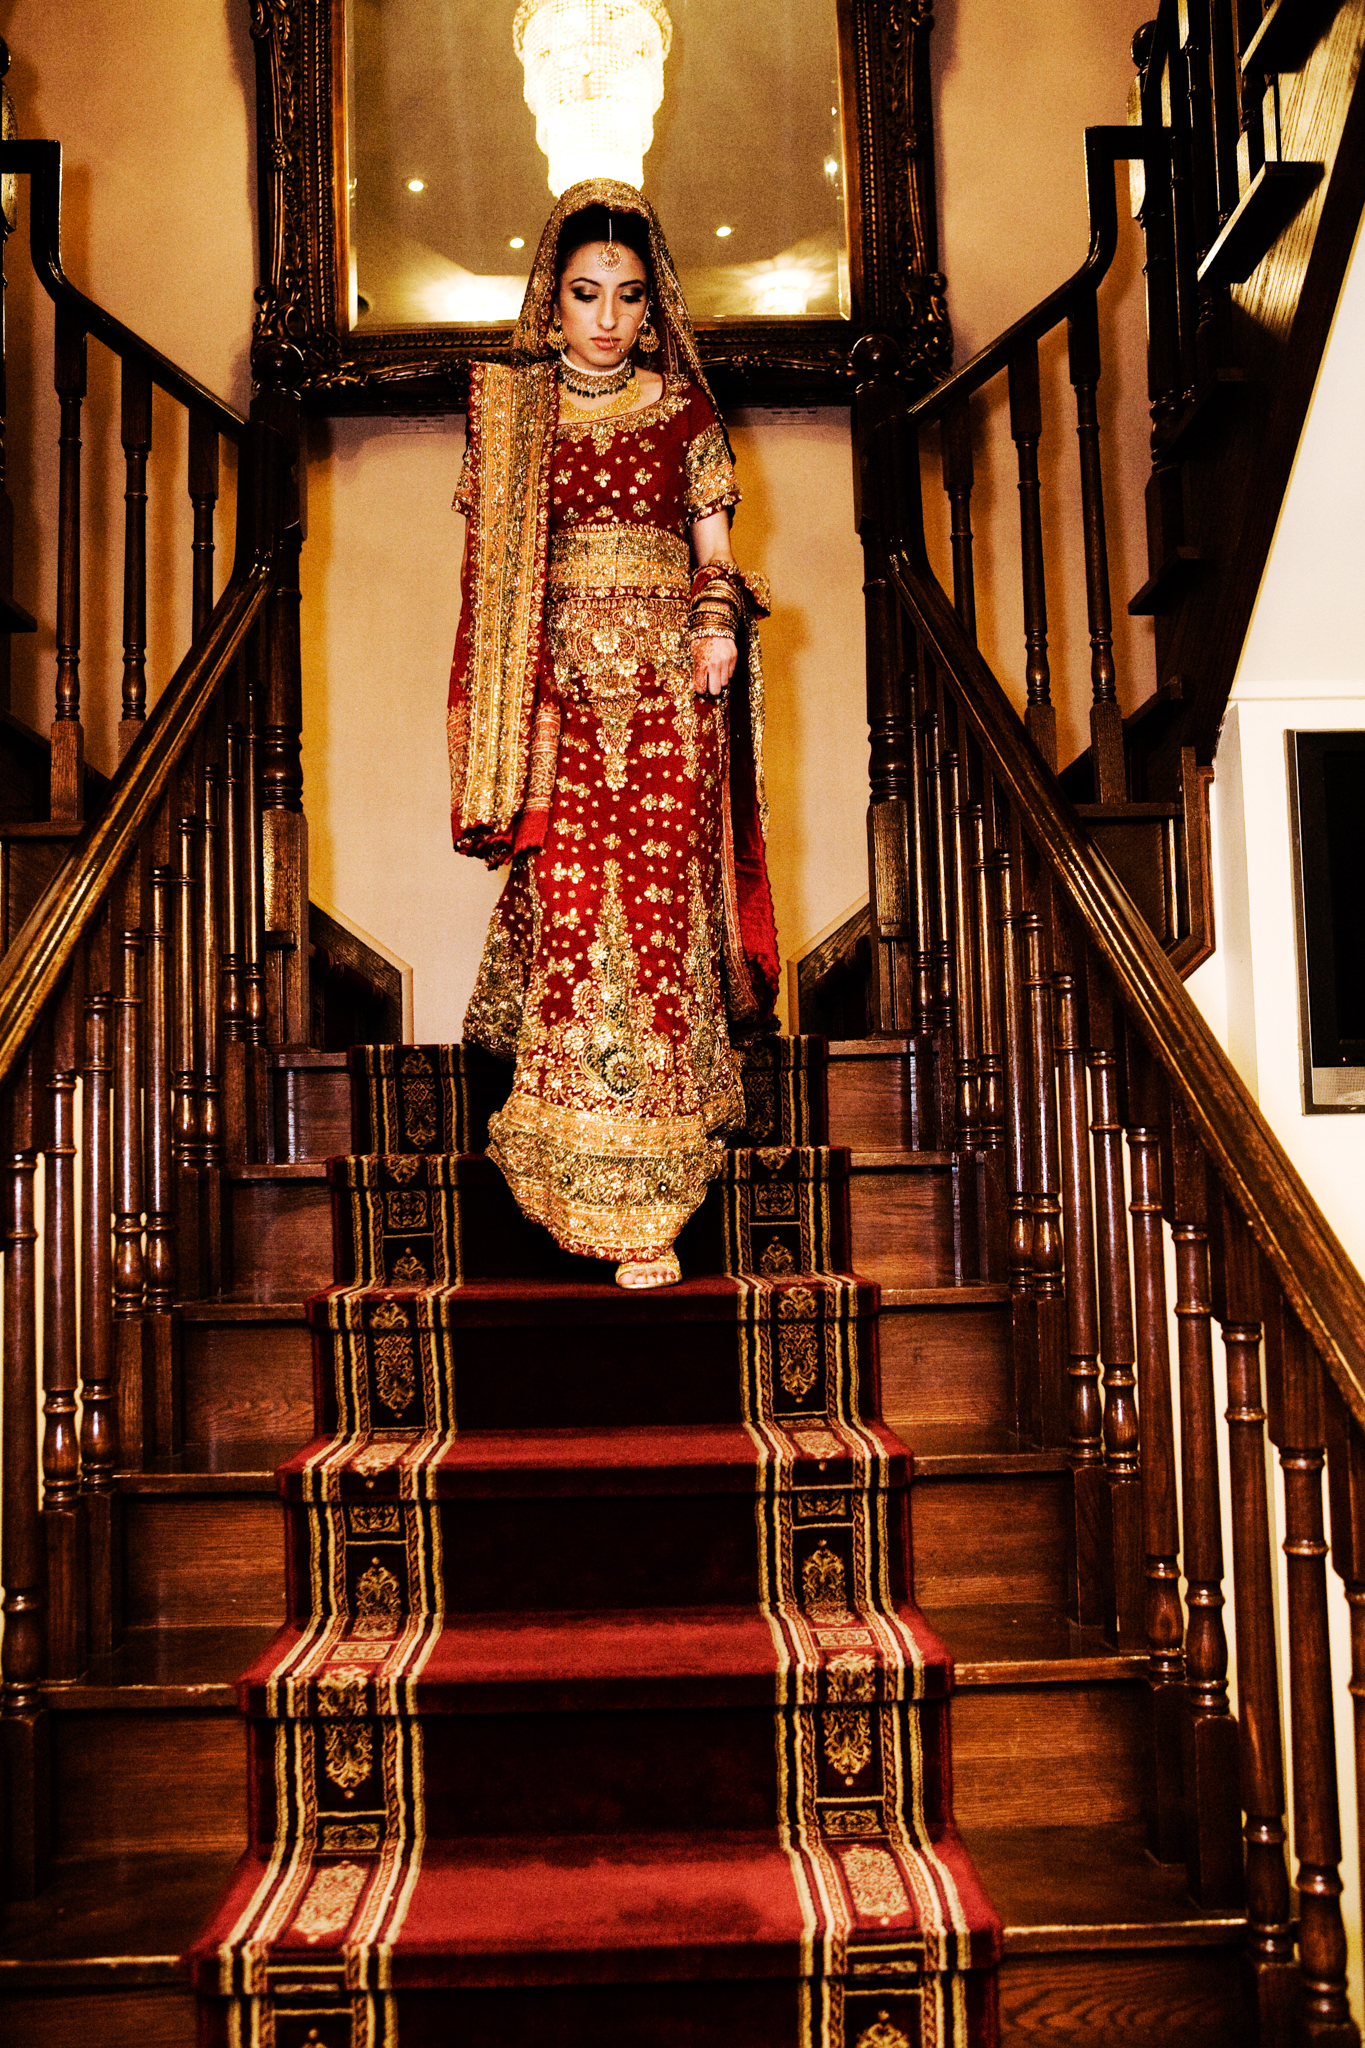 Mehndi bride on stairs Muslim wedding MN documentary wedding photographer